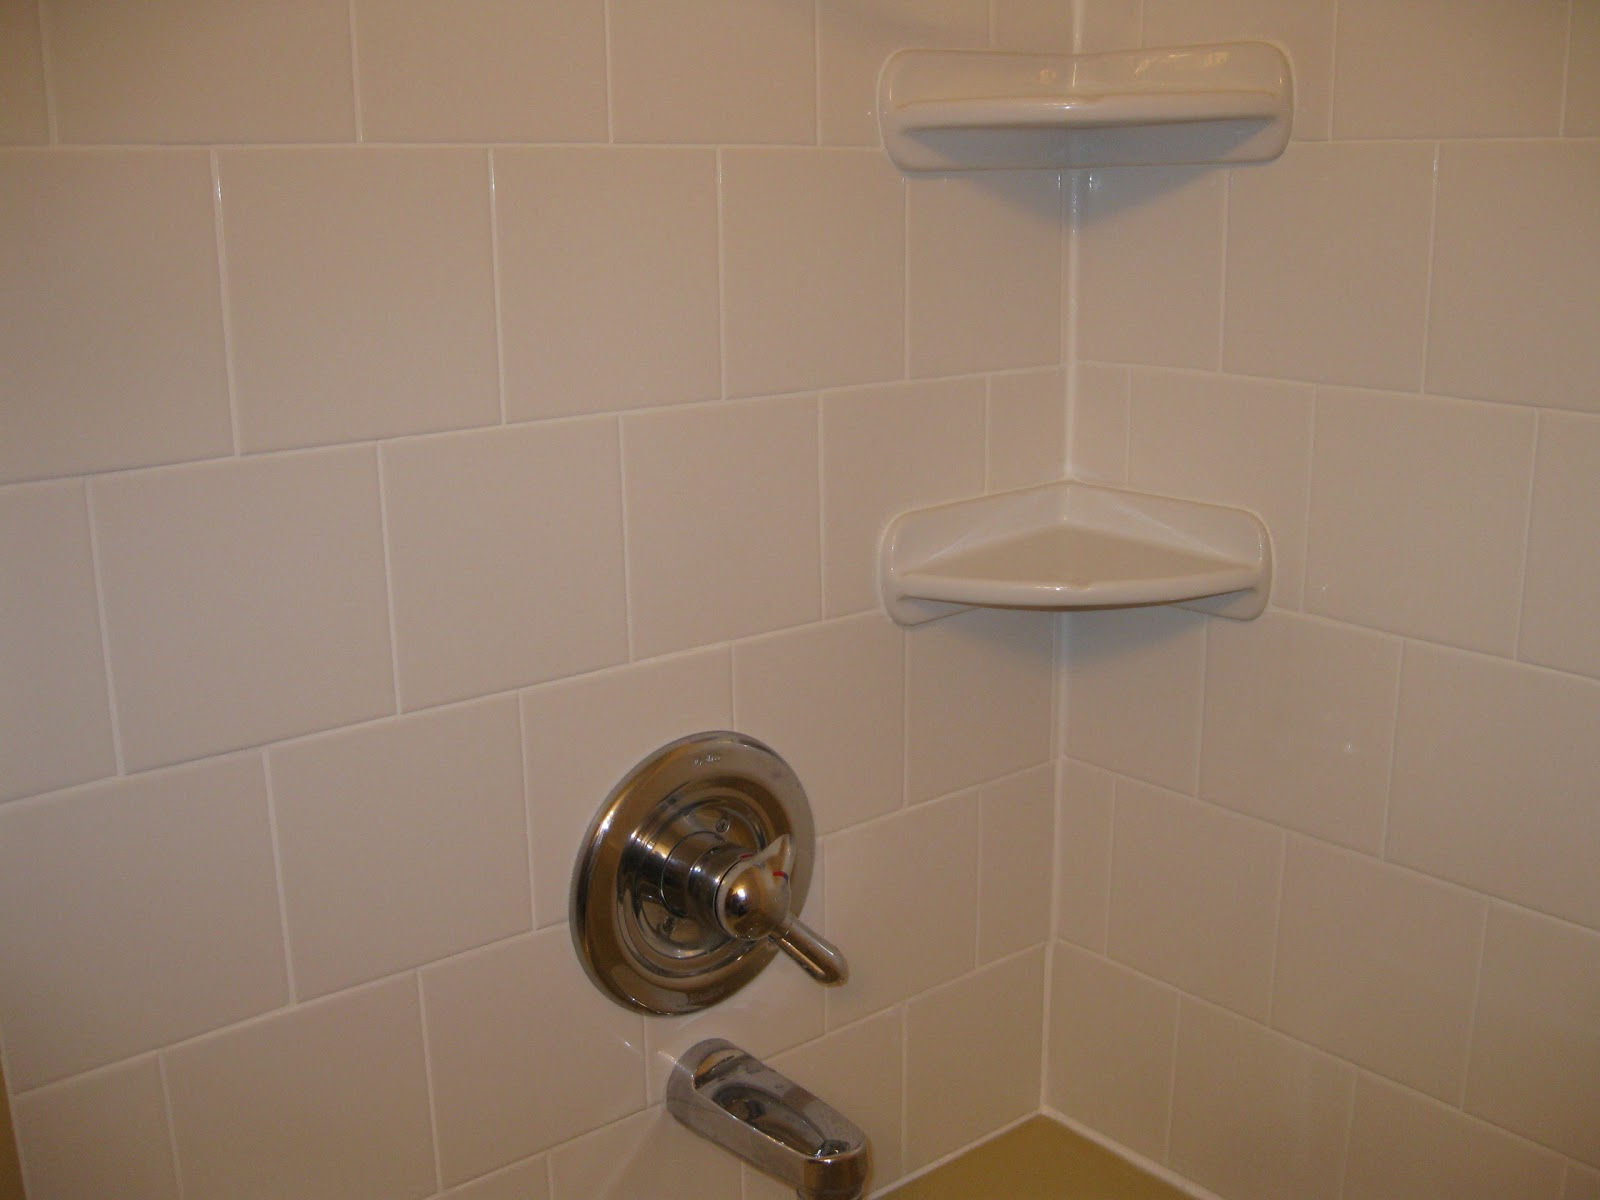 Bathroom Tiles Replacement ceramic bathroom tile replacement. http www conceptbathrooms com